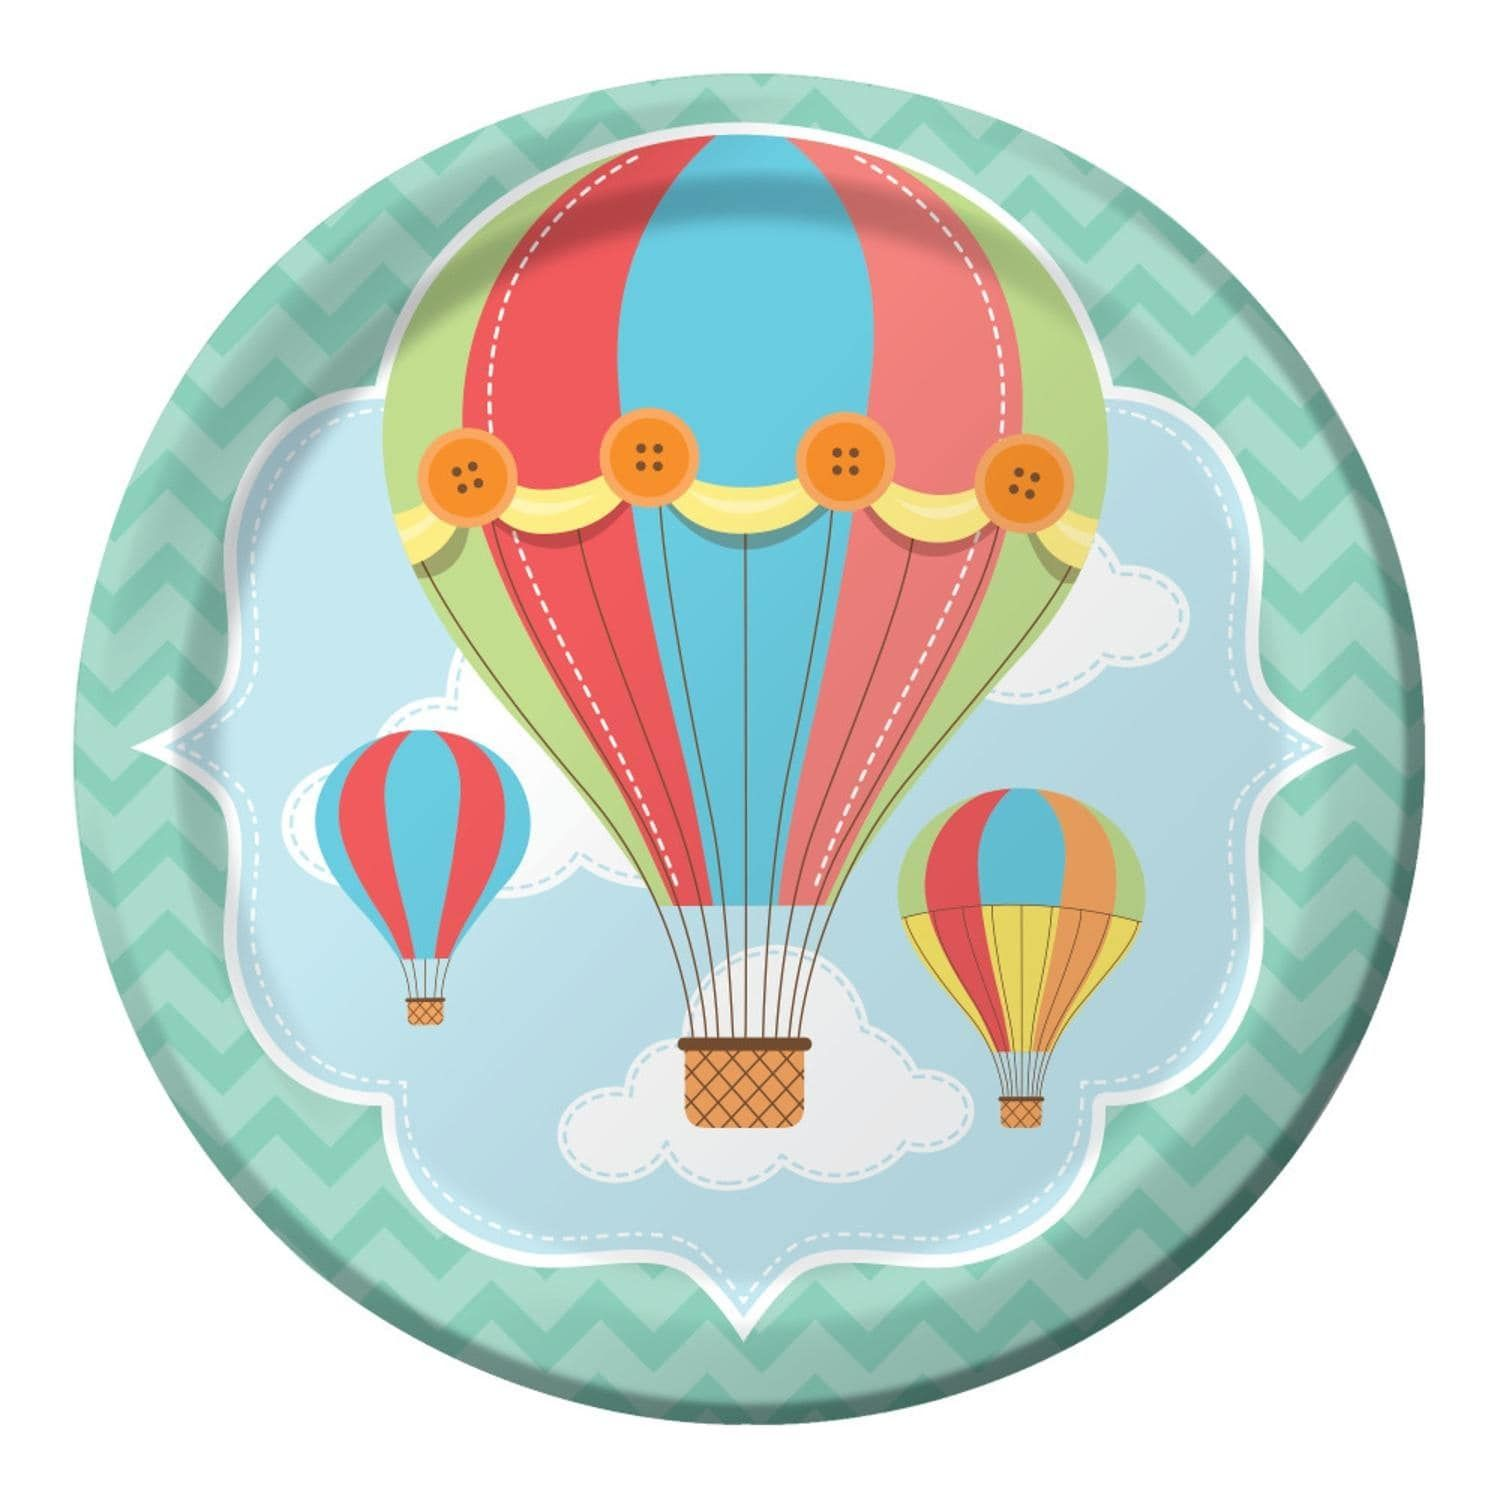 Club Pack of 96 Up, Up, & Away Hot Air Balloon Premium